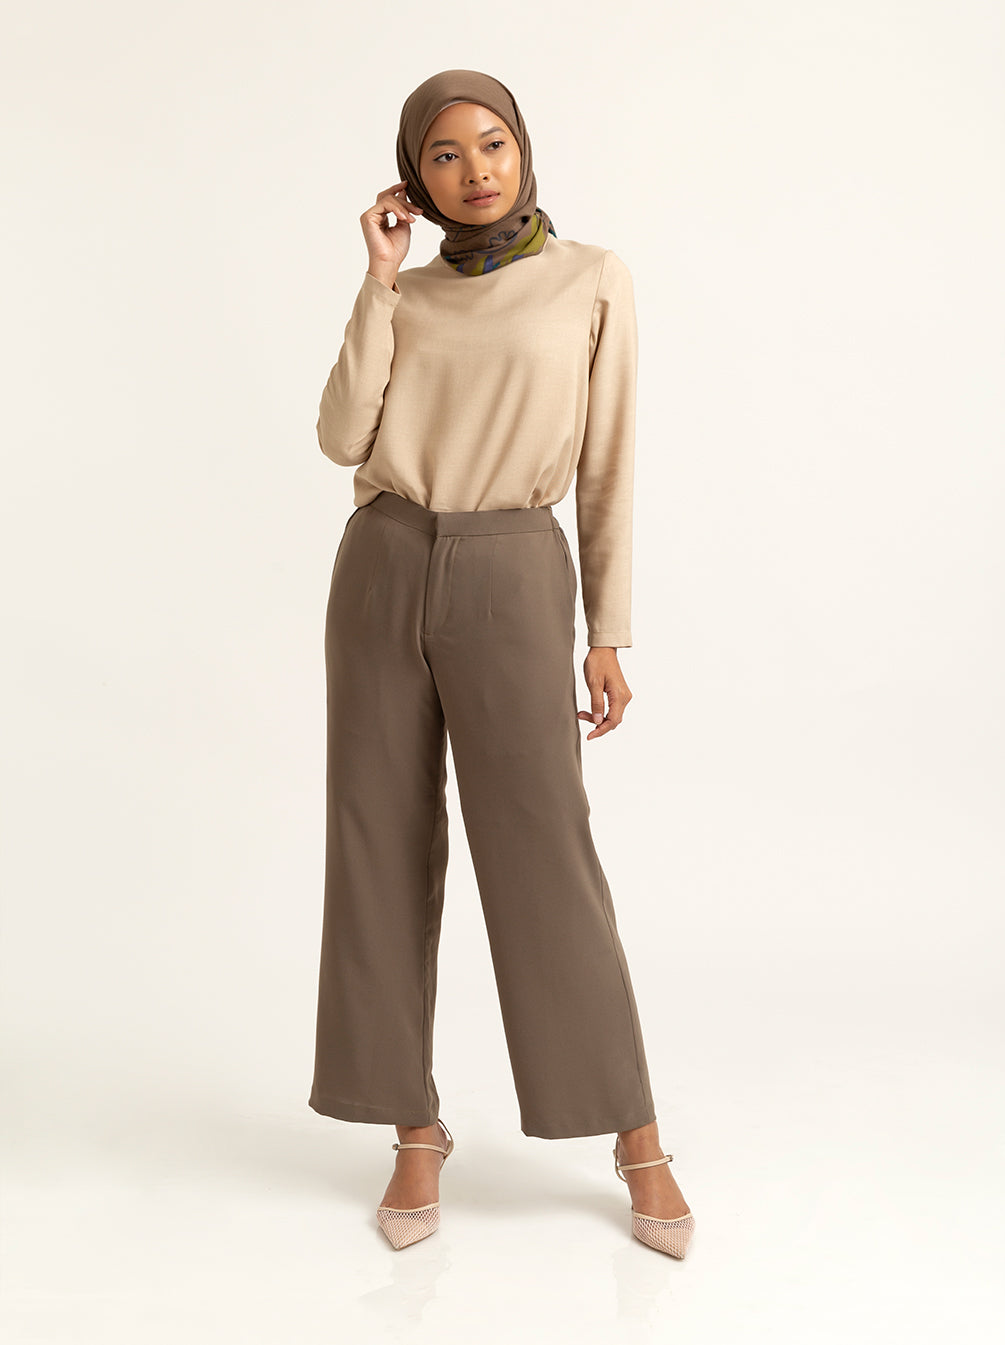 ADELLA PANTS PLAIN CHIVE